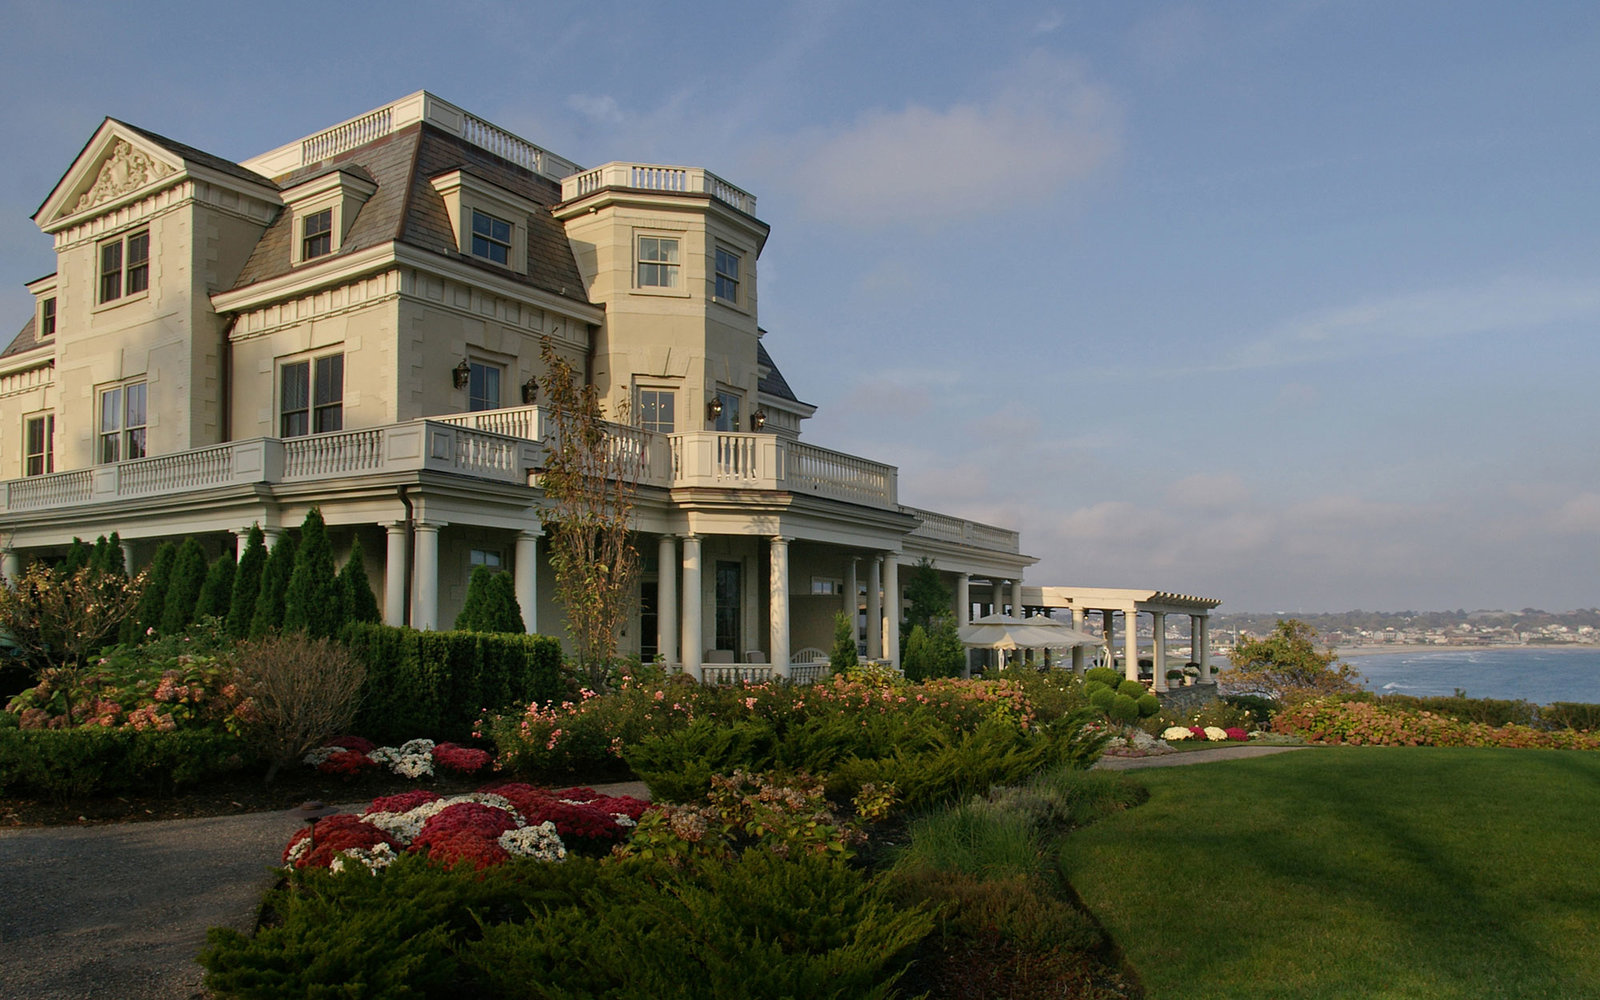 2. Chanler at Cliff Walk in Newport,   Rhode Island